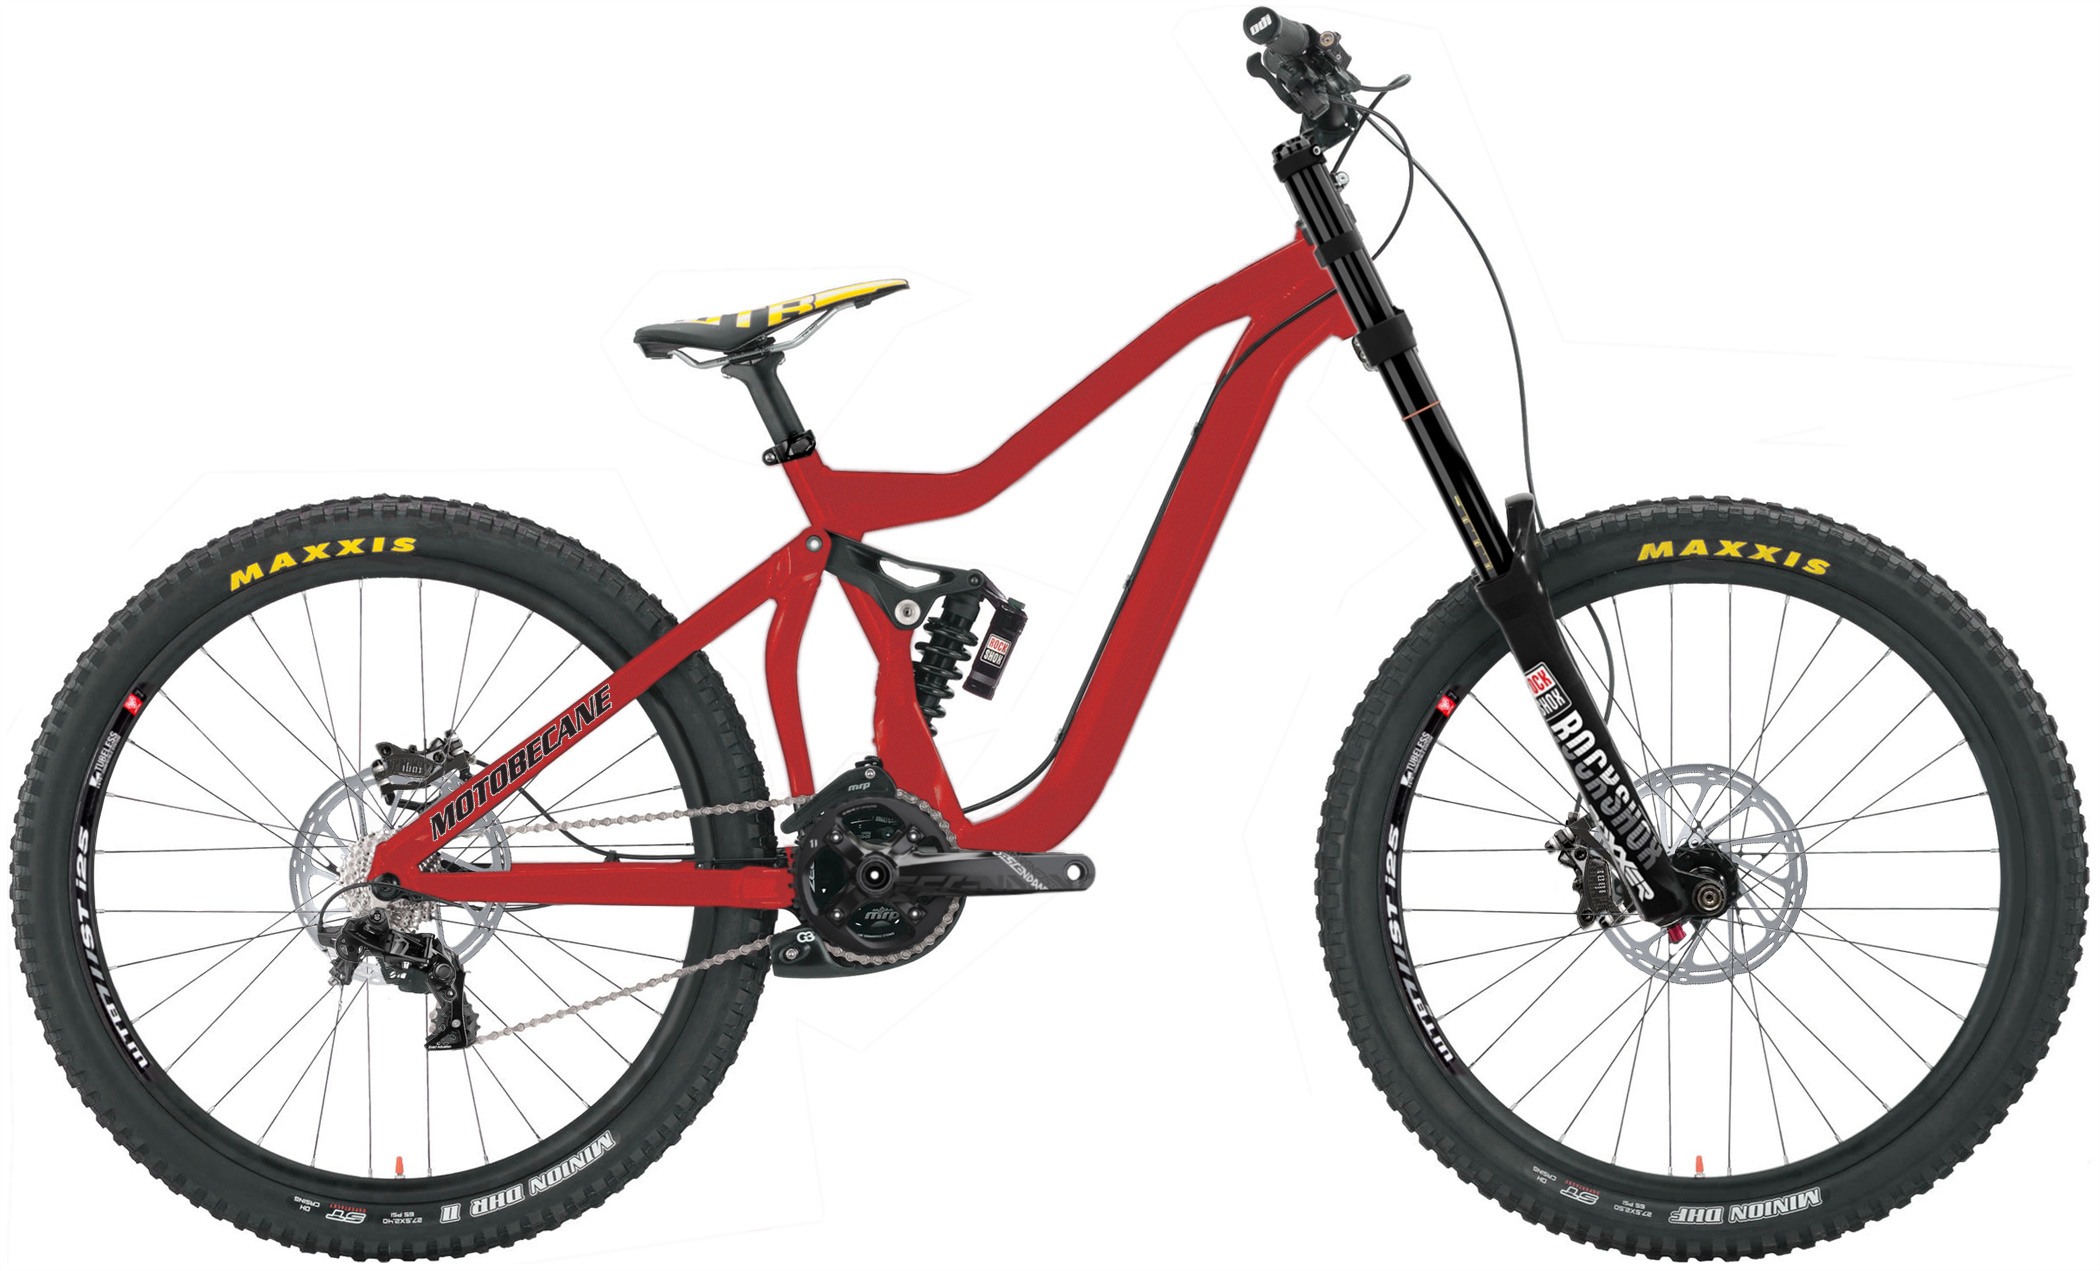 2Hundred7 - SRAM EQUIPPED DOWNHILL BIKE w/ MASSIVE CLEARANCE